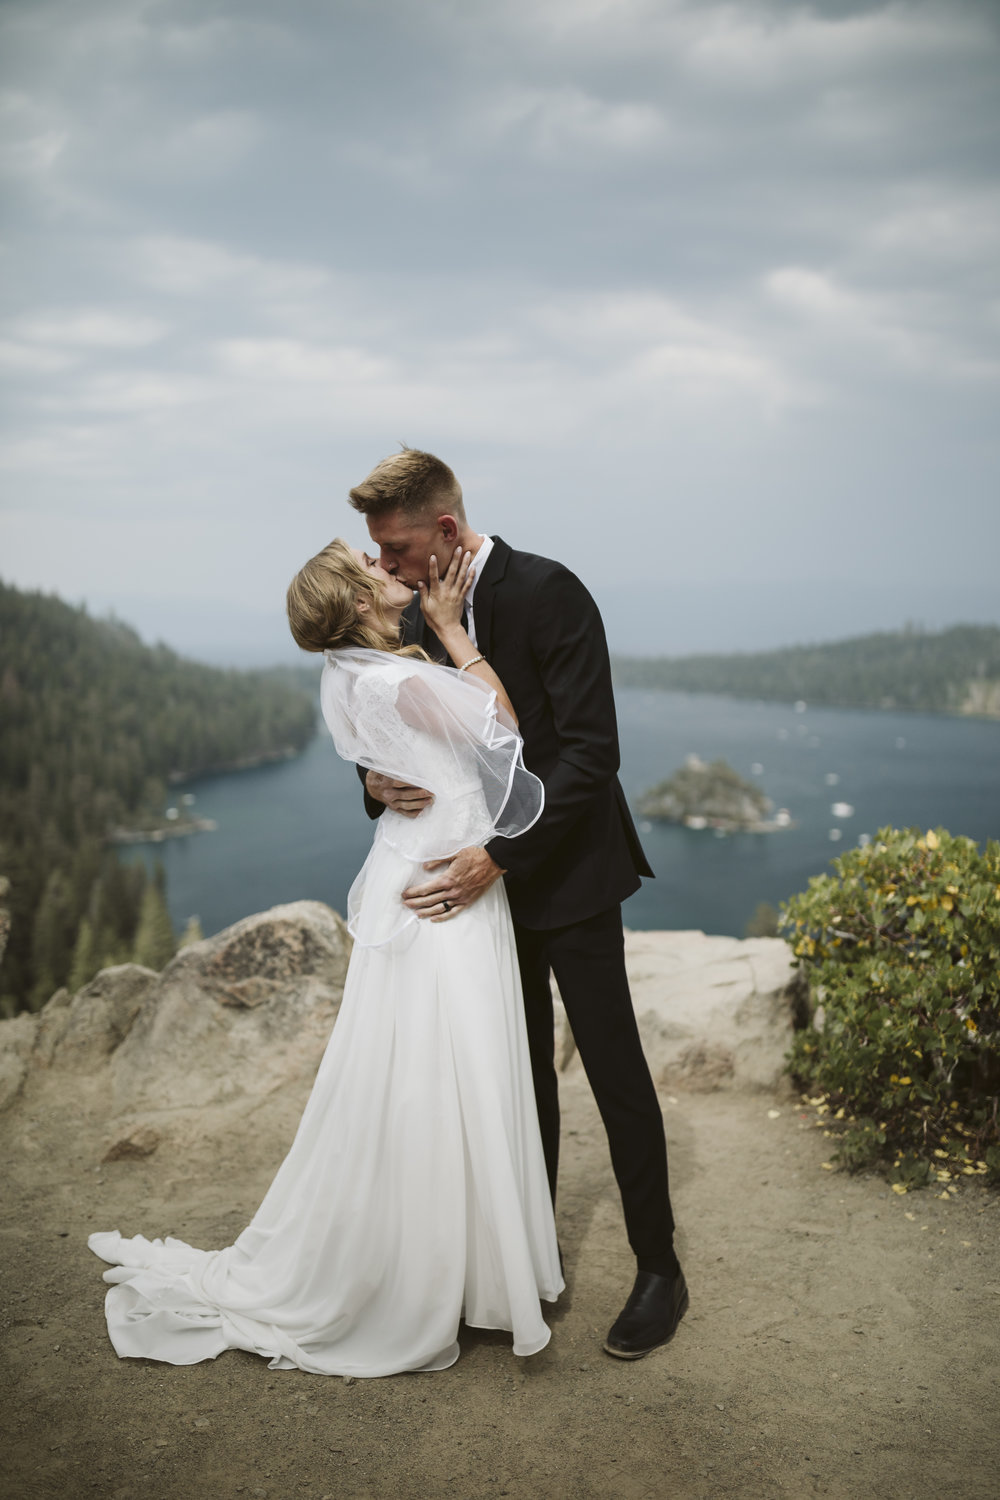 0M7A0759vildphotography-adventurewedding-adventurouswedding-tahoewedding-laketahoewedding-adventureelopement-laketahoeweddingphotographer-wedding-photographer-weddingphotographer-Chase-Sam.jpg